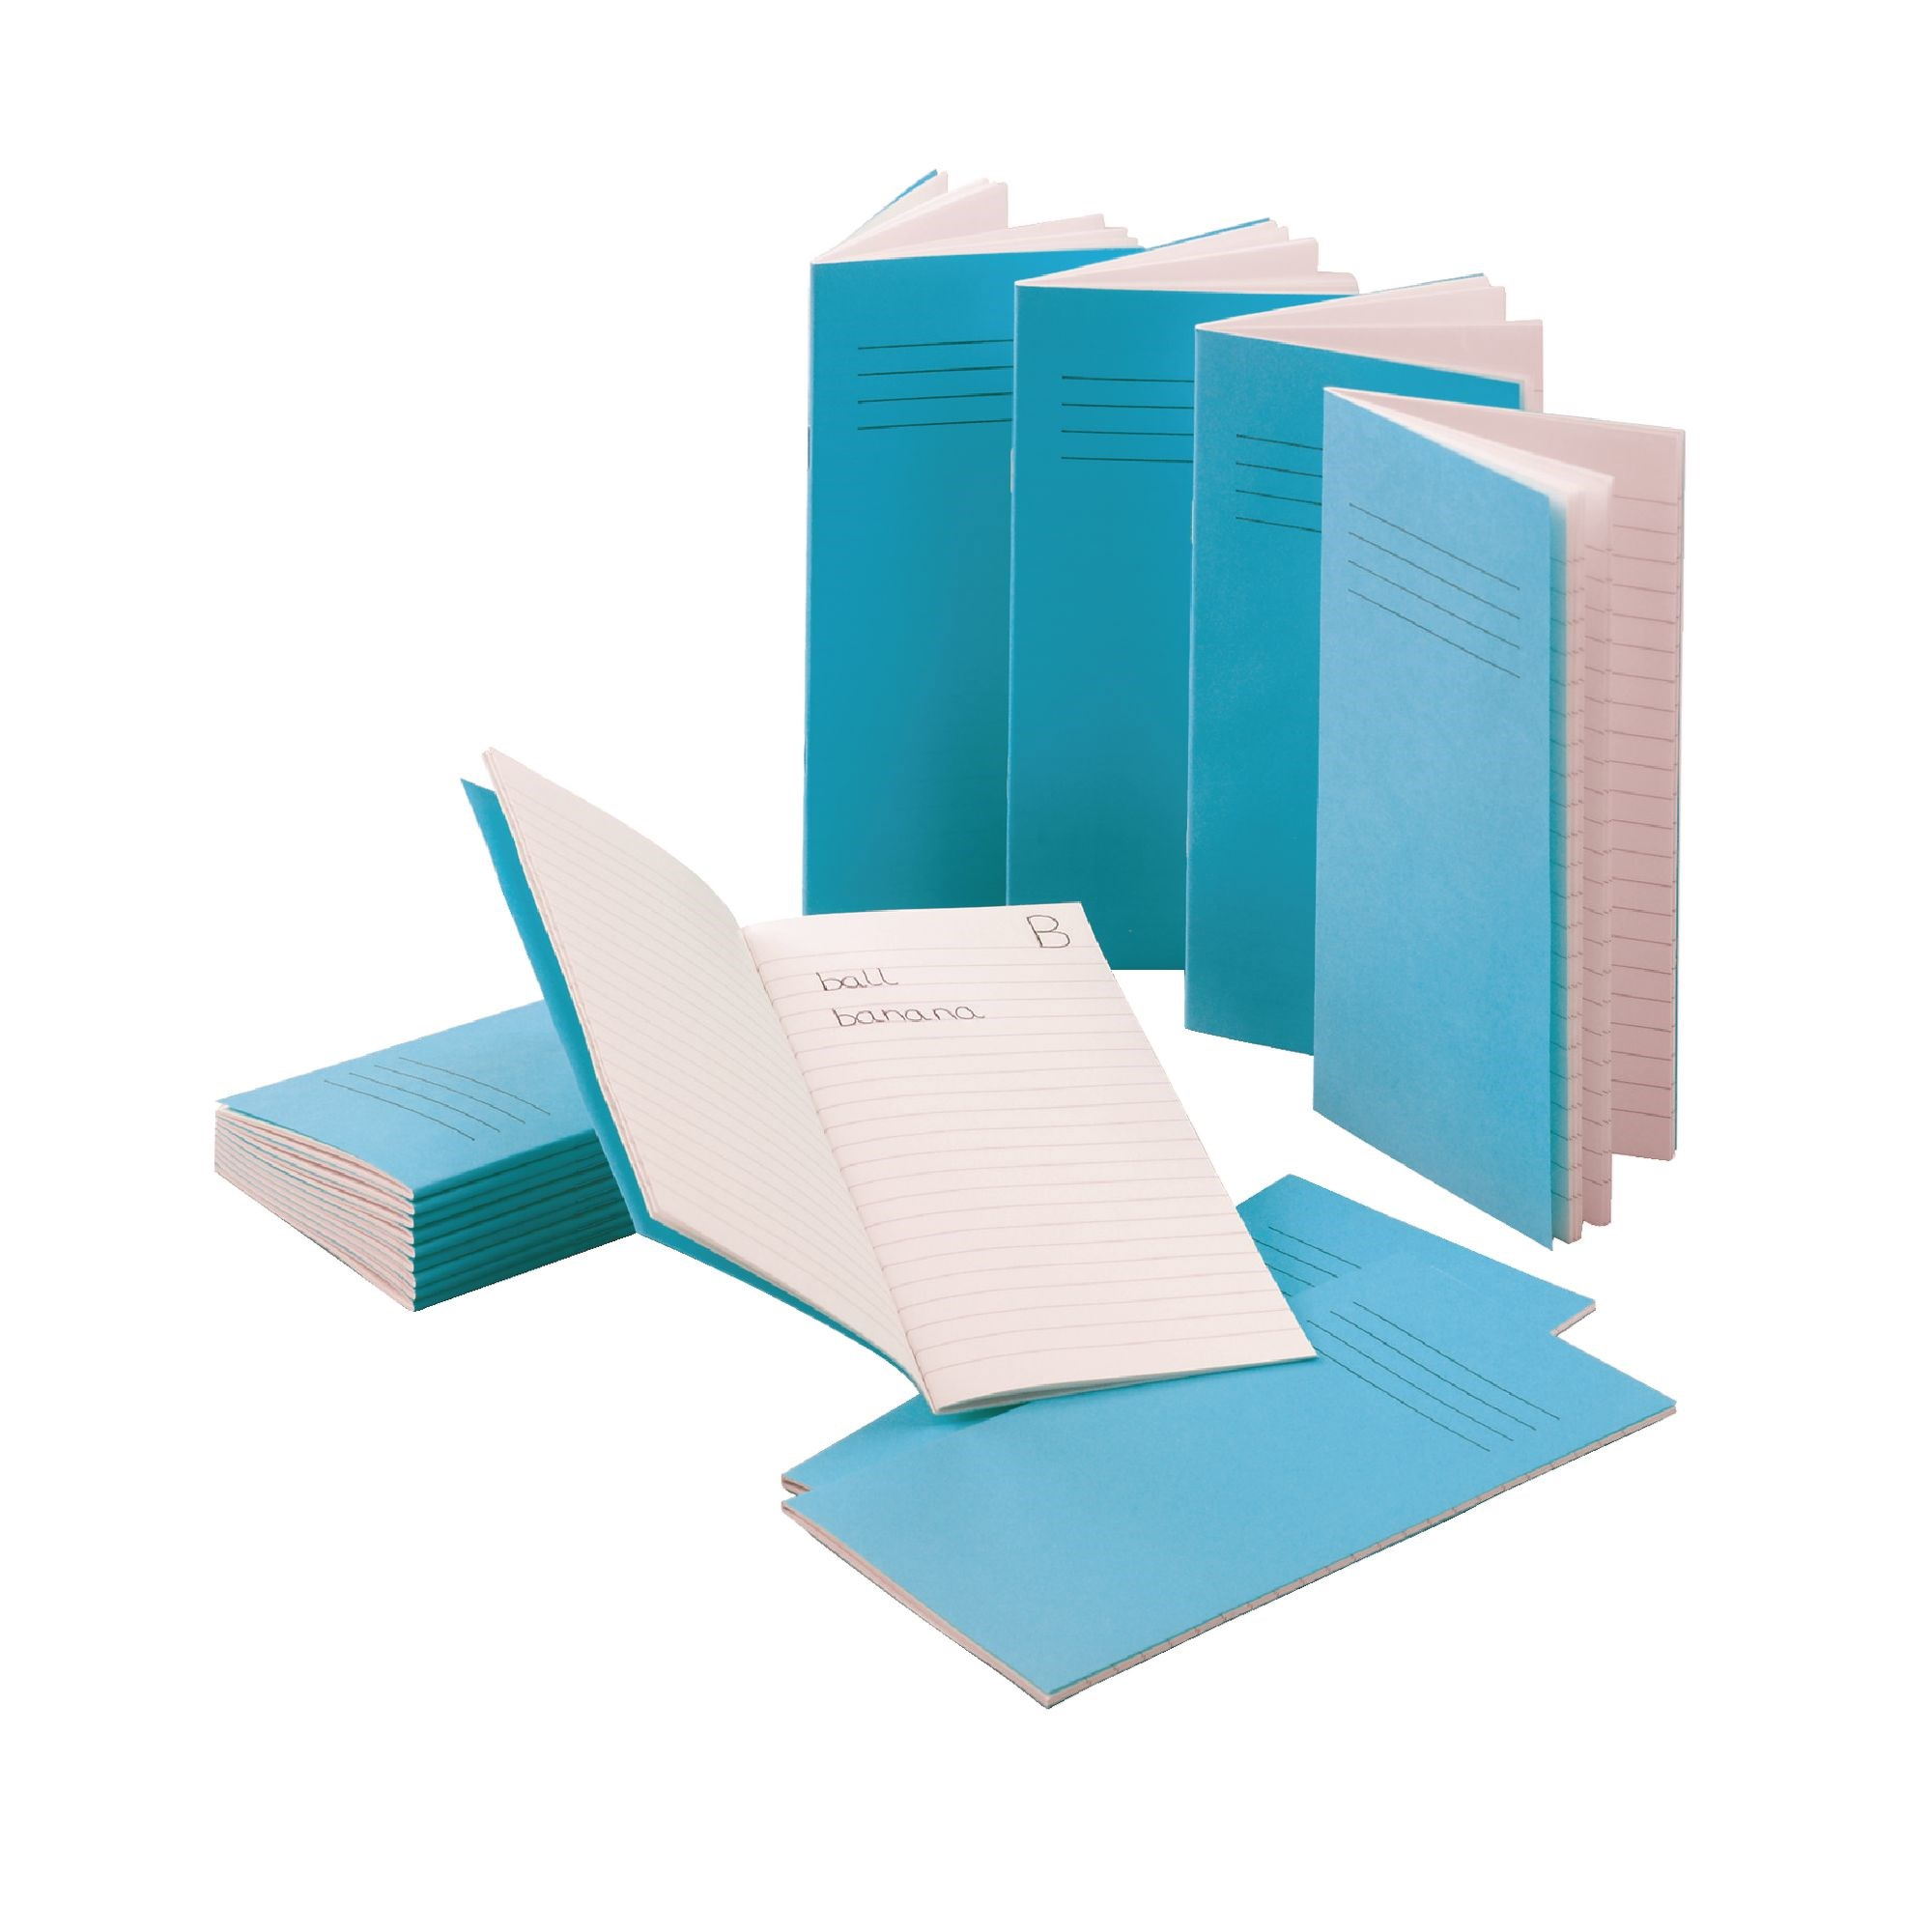 Classmates Light Blue 200 x 120mm Classmates Notebook 32 Pages 6mm Ruled (Pack of 100)